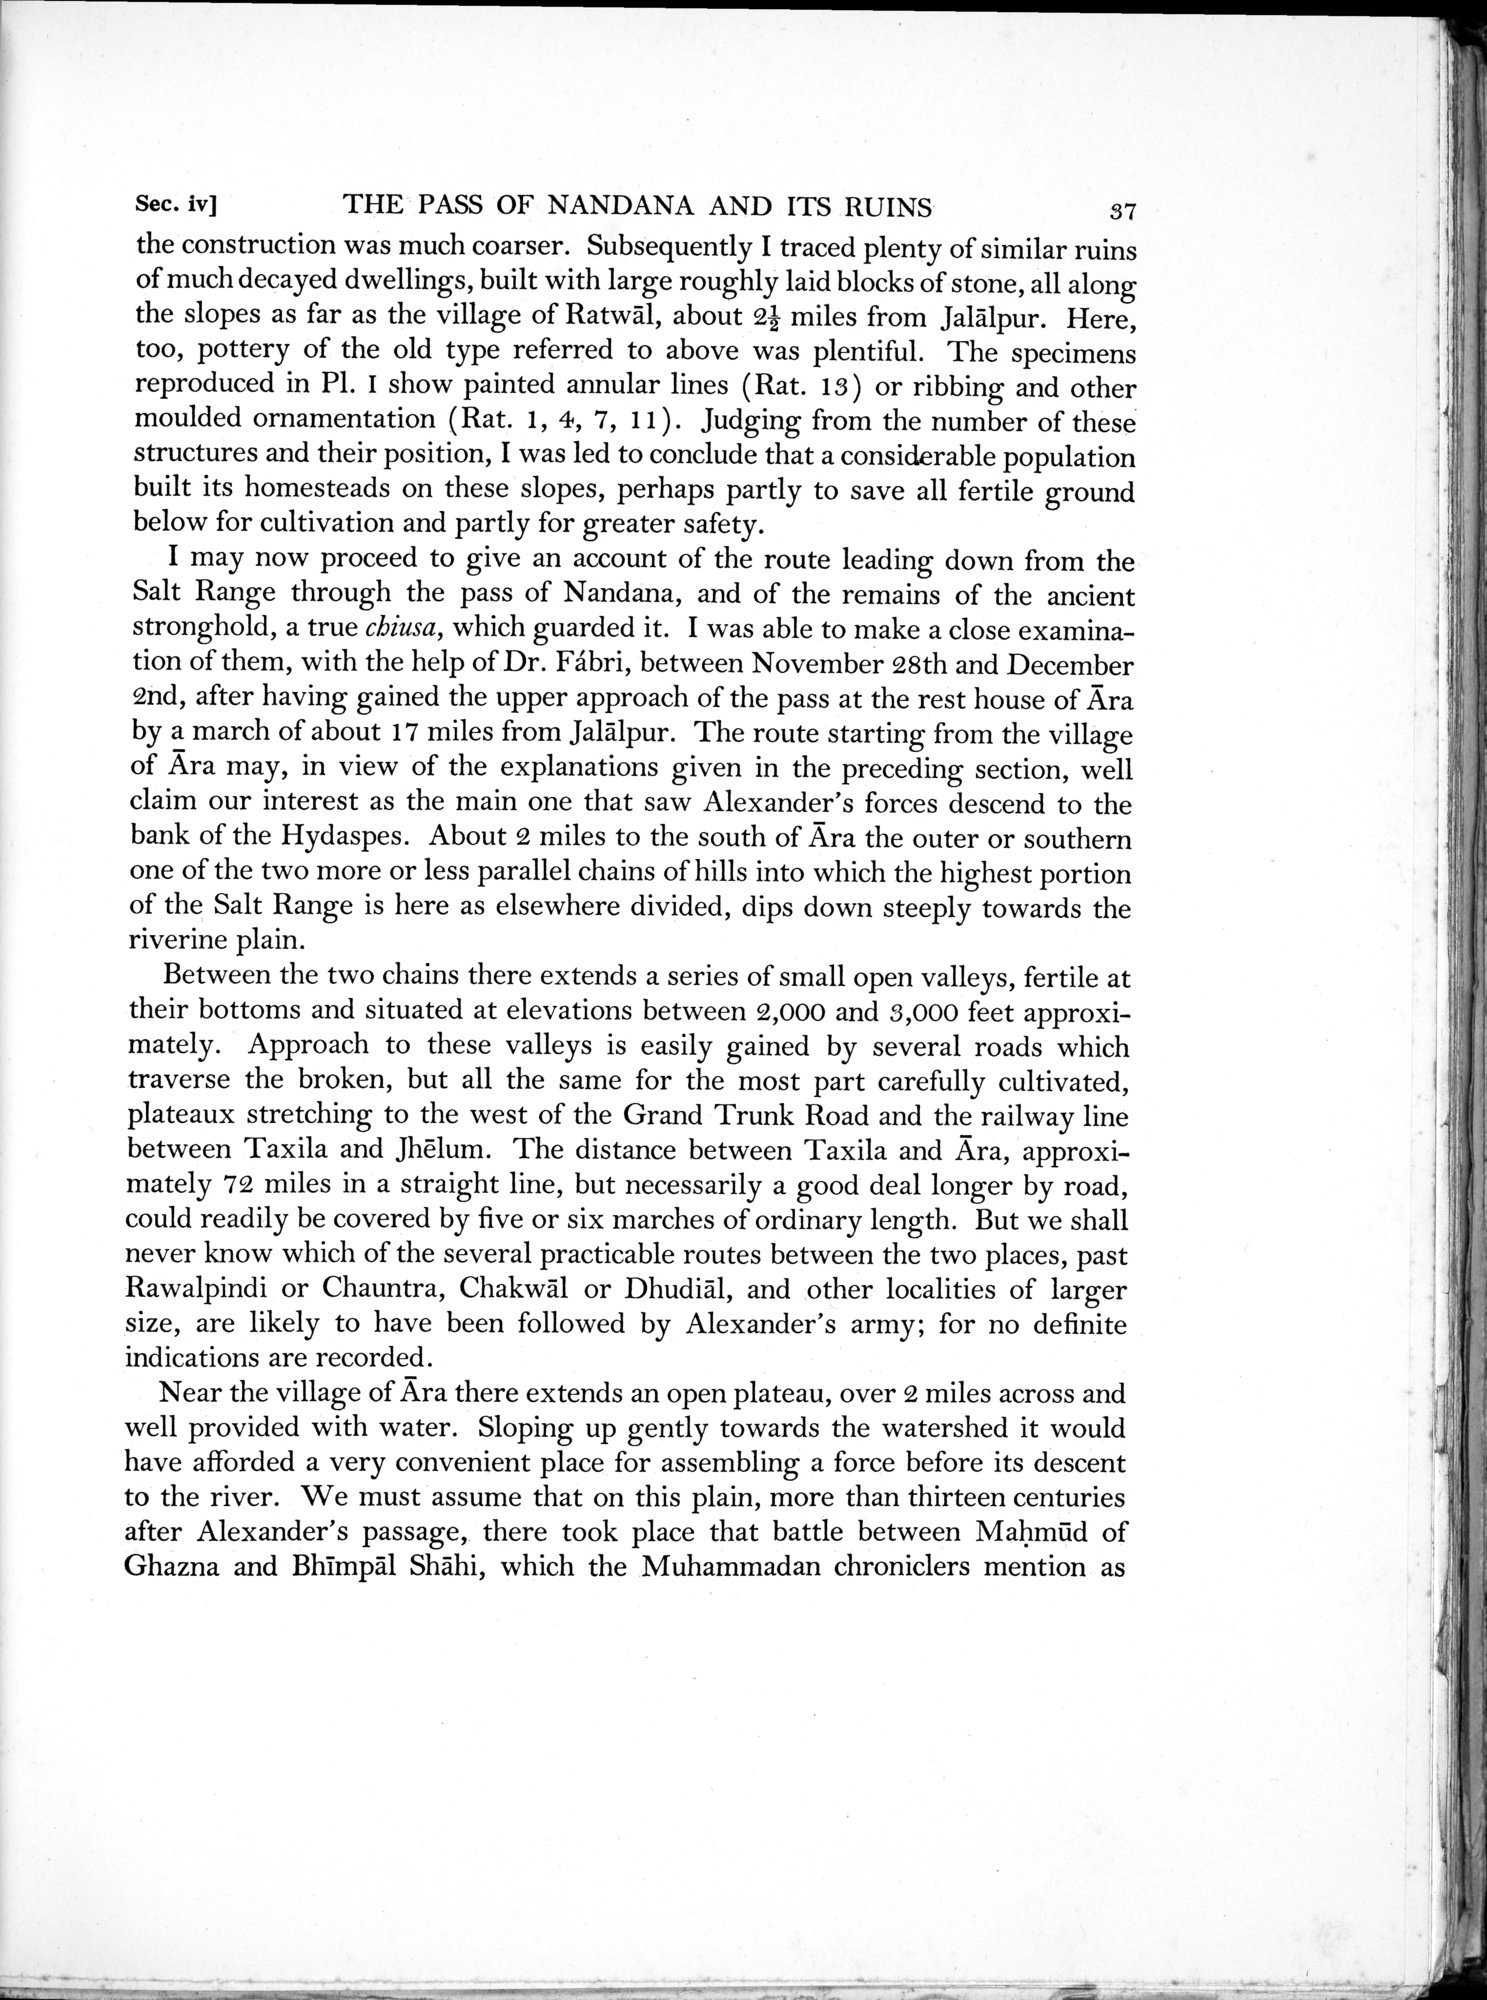 Archaeological Reconnaissances in North-Western India and South-Eastern Īrān : vol.1 / Page 67 (Grayscale High Resolution Image)